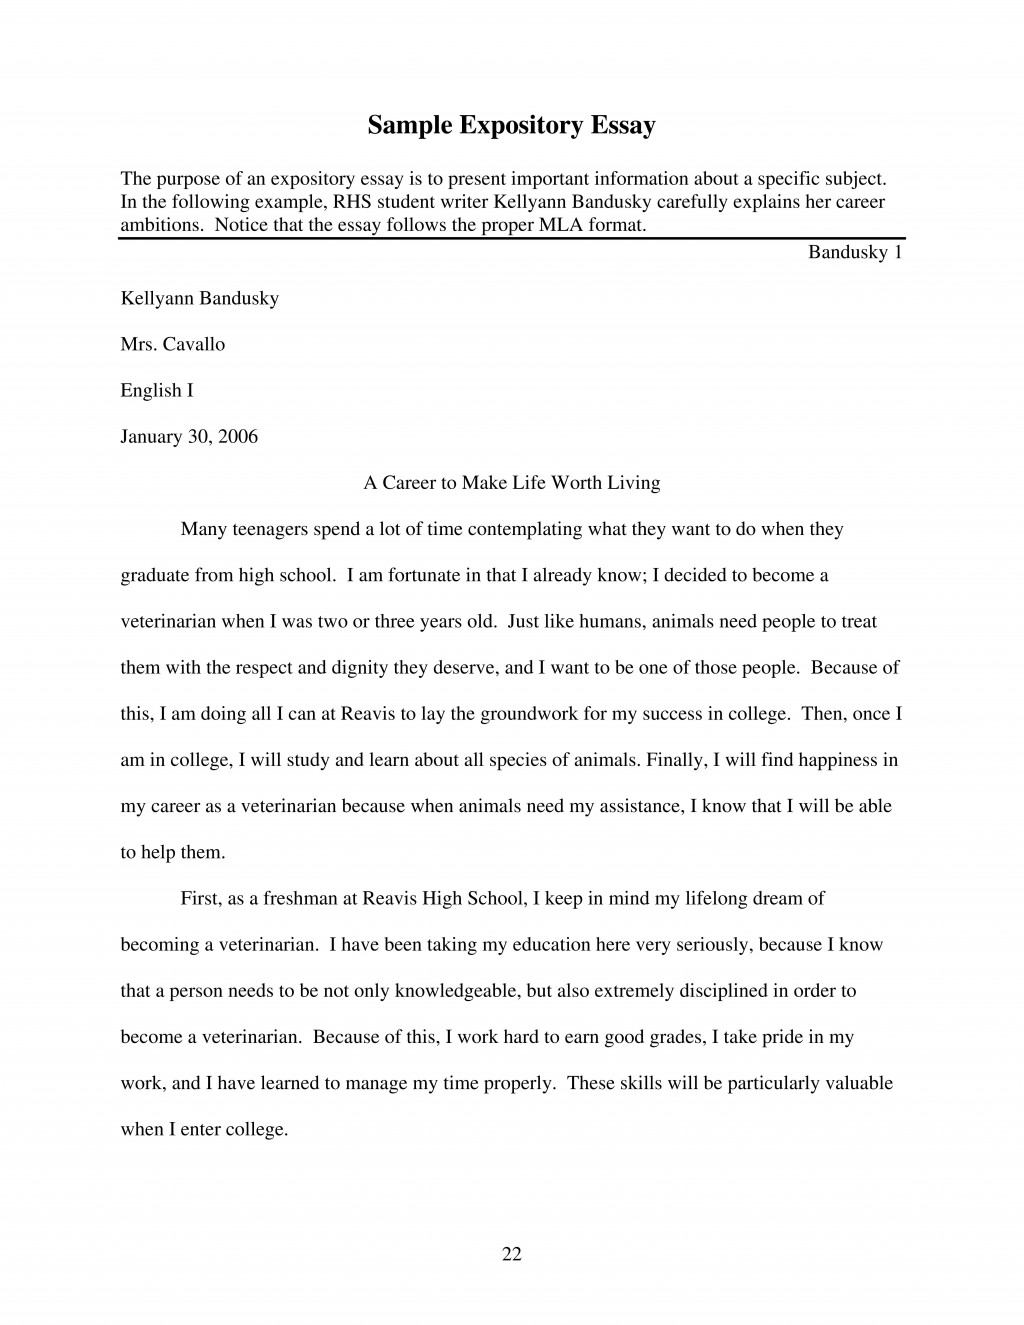 009 Essay Example What Is An Expository Sample Page 1 Magnificent Gcu Examples 4th Grade Large